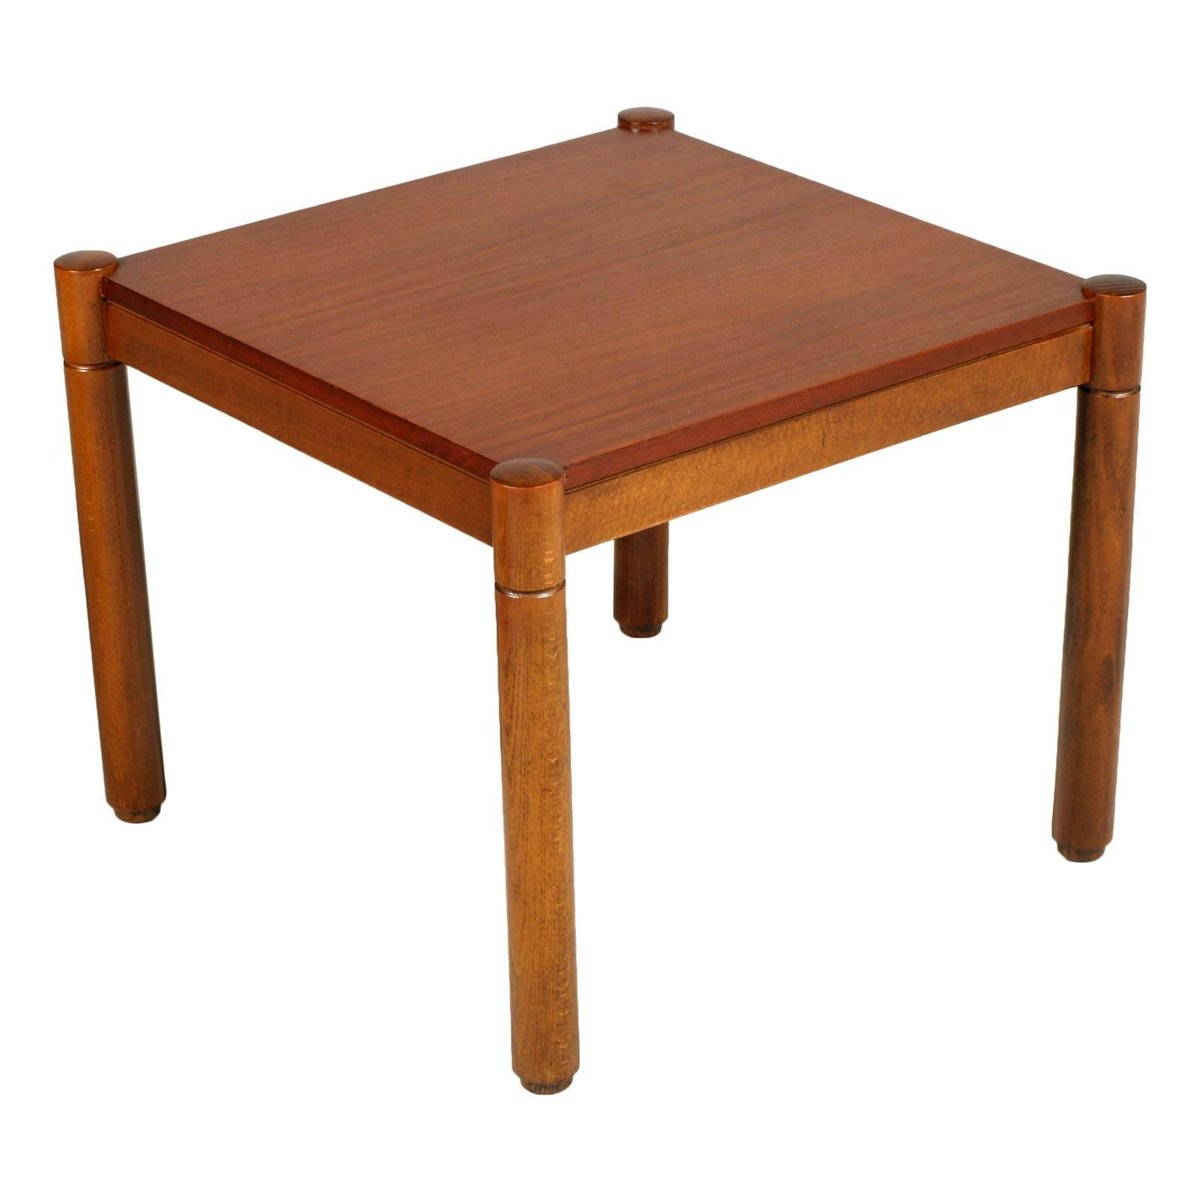 MidCentury Modern Coffee Table For Sale At Pamono - Cheap mid century modern coffee table